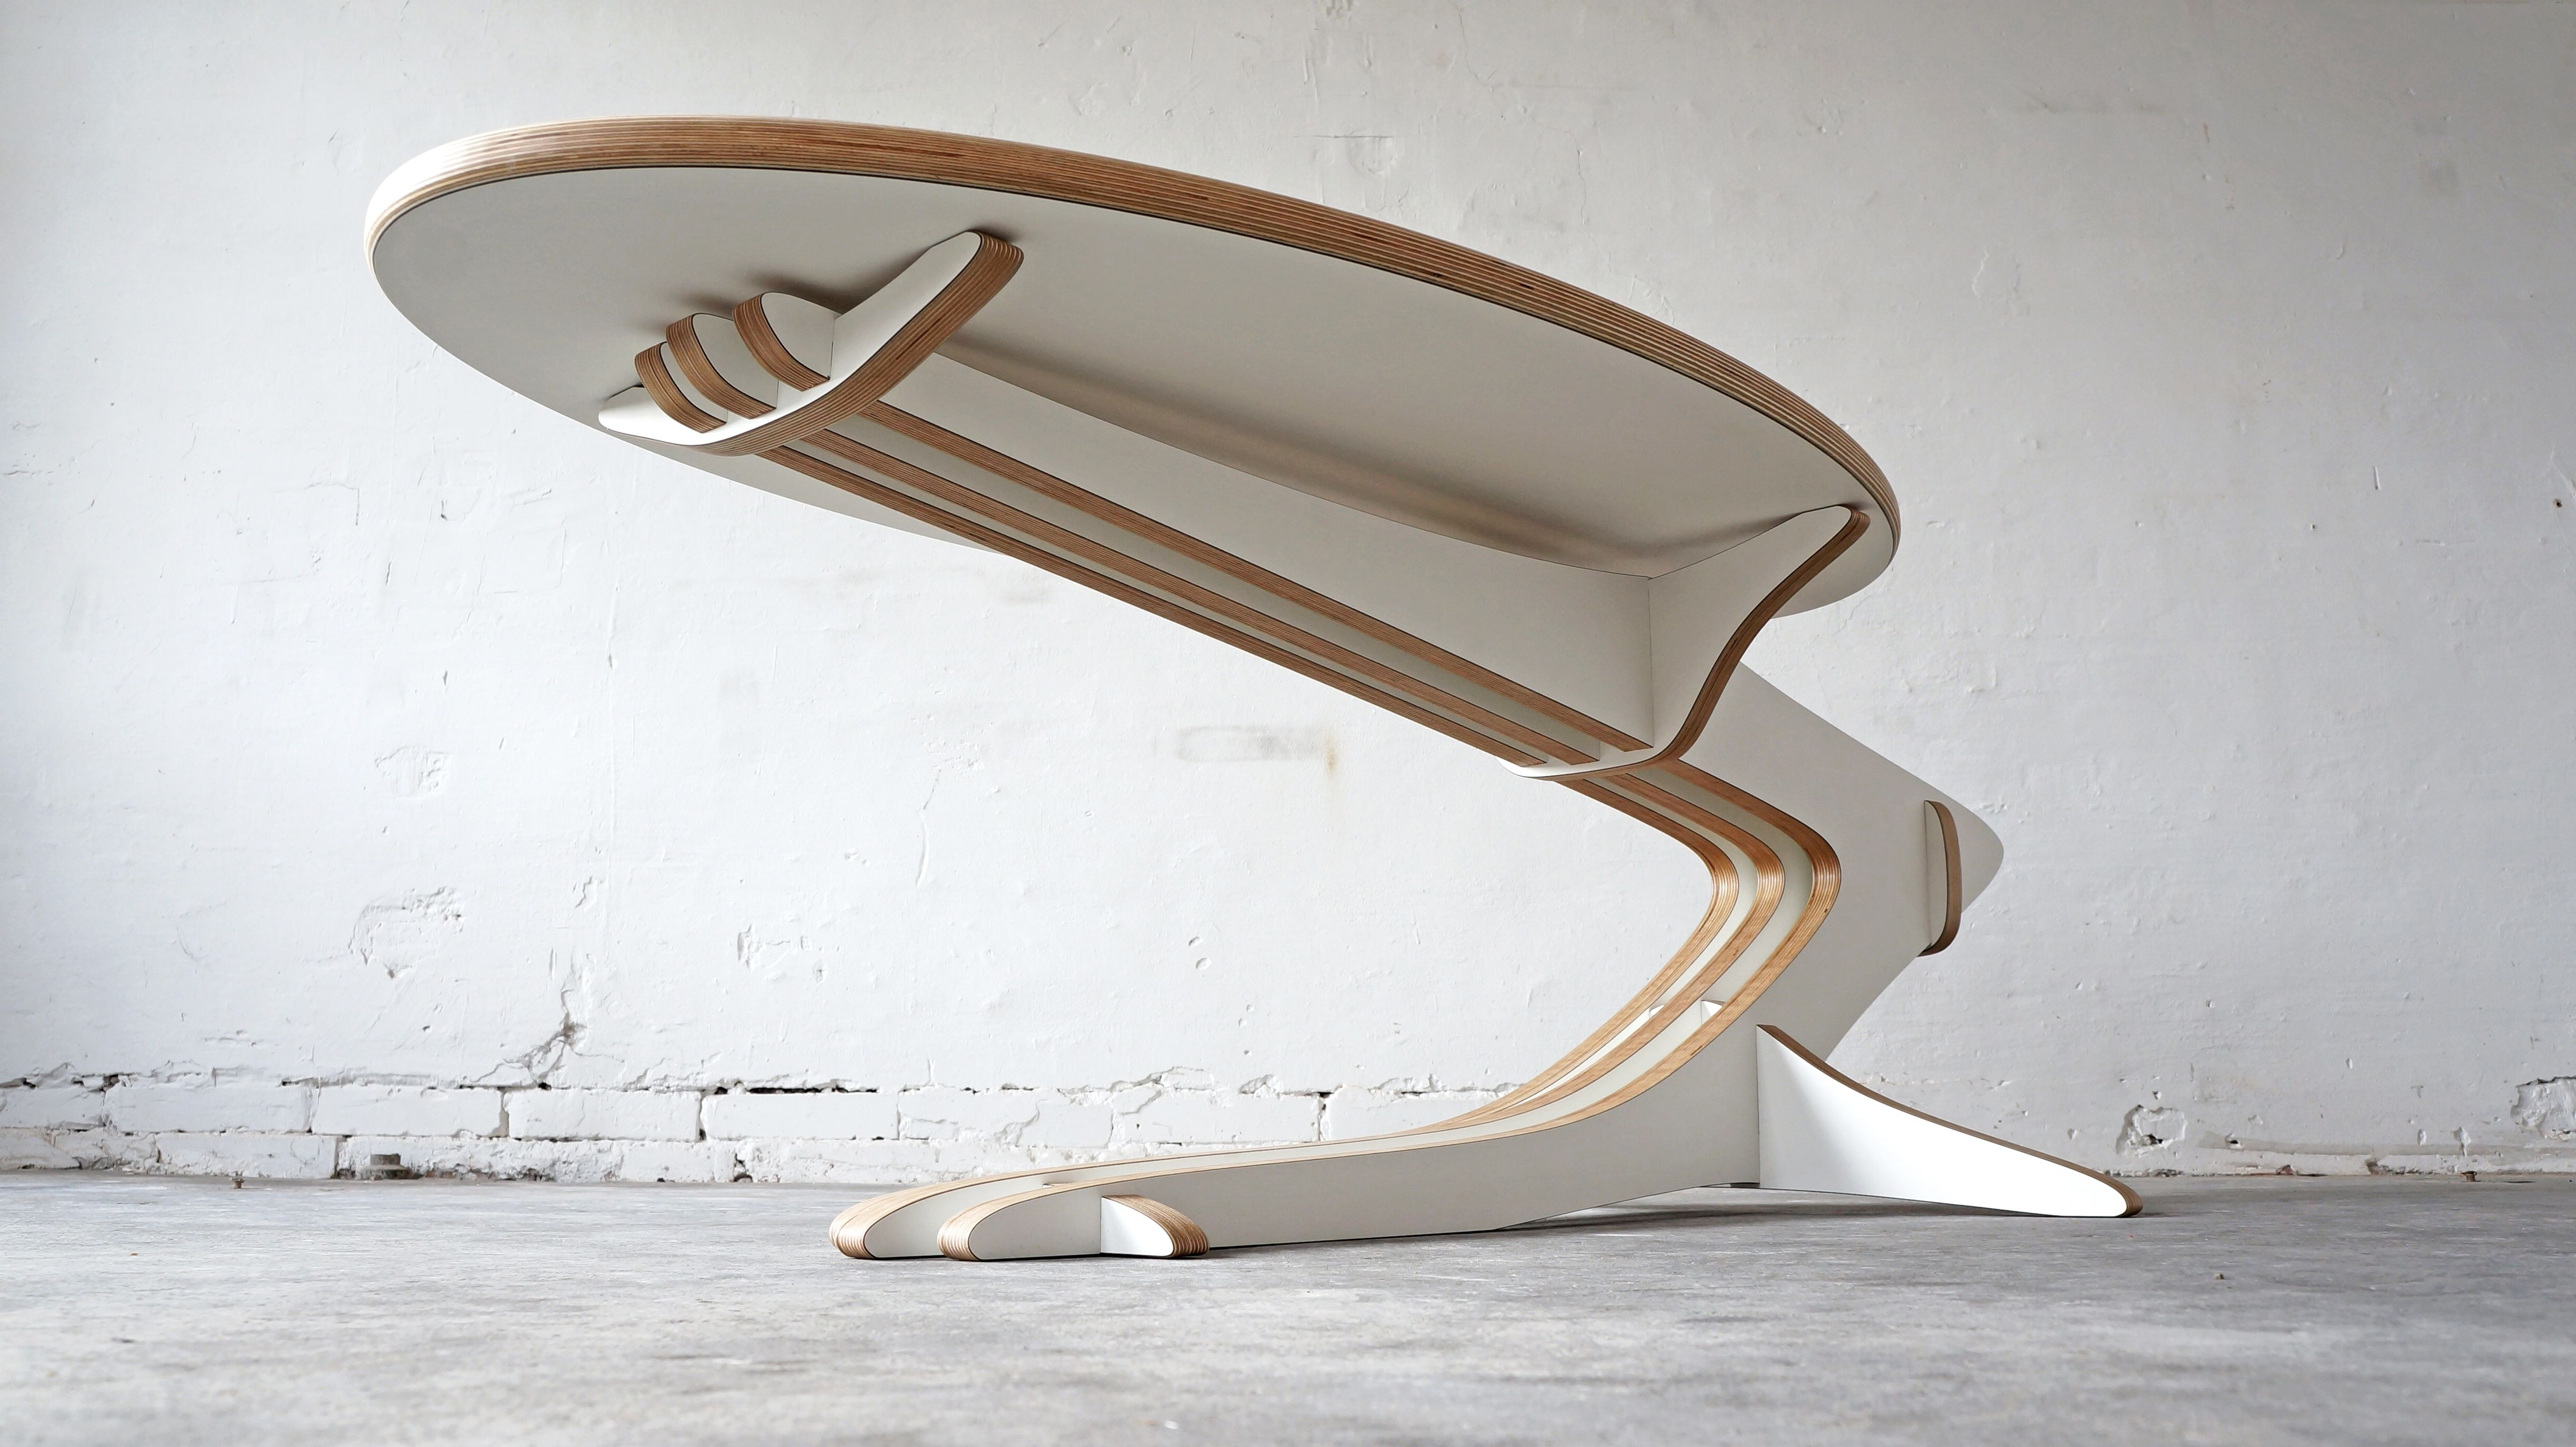 Qvist Coffee Table by Peter Qvist